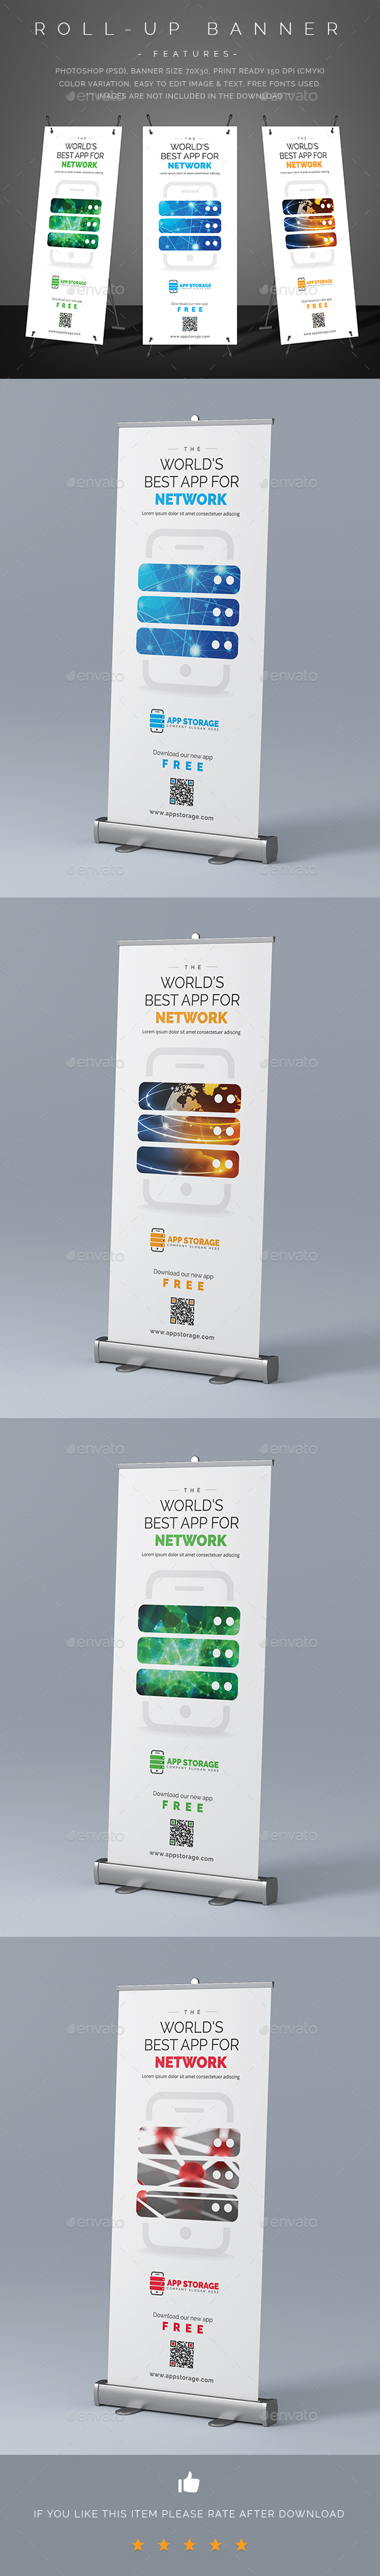 13 roll up banner design template psd images banner stand design.